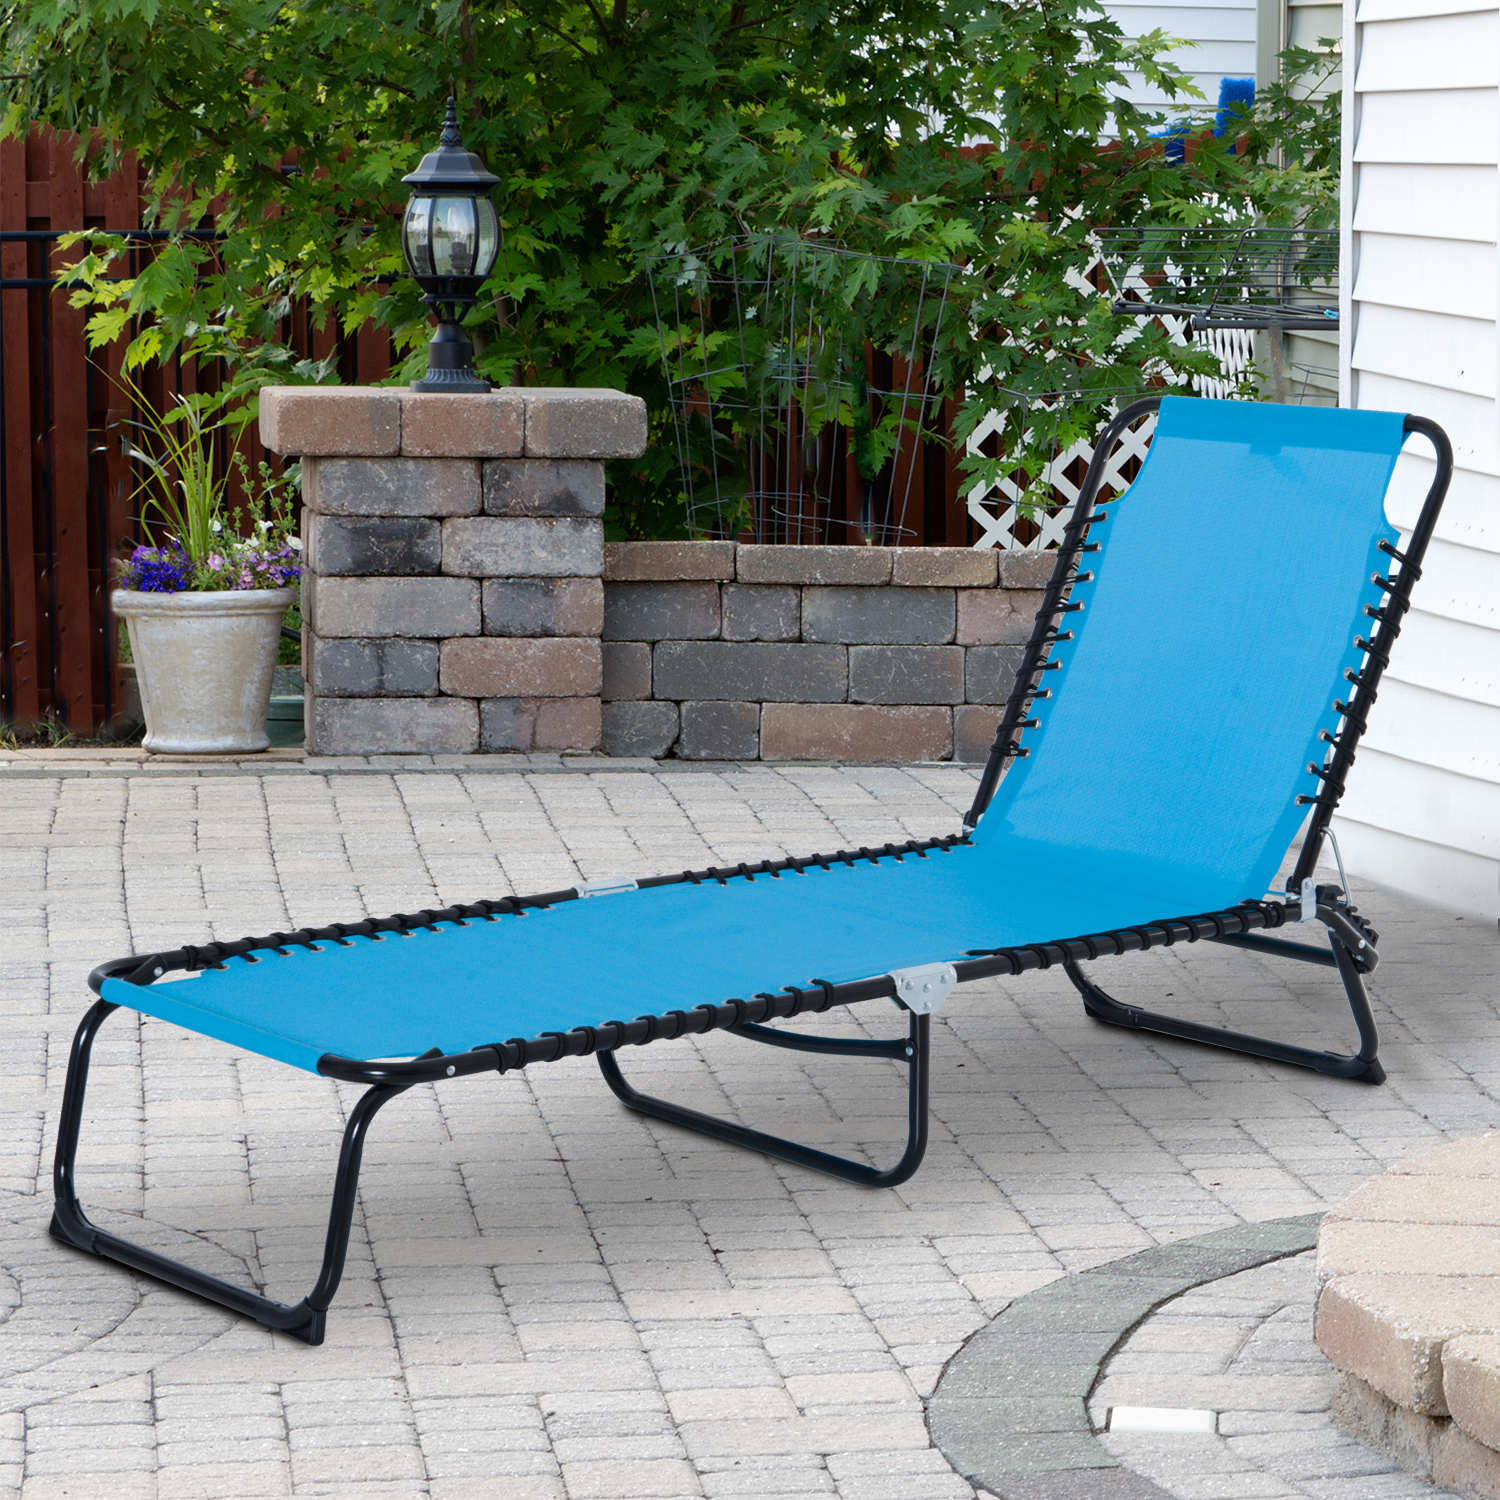 Details About 3 Position Portable Reclining Beach Chaise Lounge Adjustable Sleeping Light Blue In Recent Portable Reclining Beach Chaise Lounge Folding Chairs (View 18 of 25)